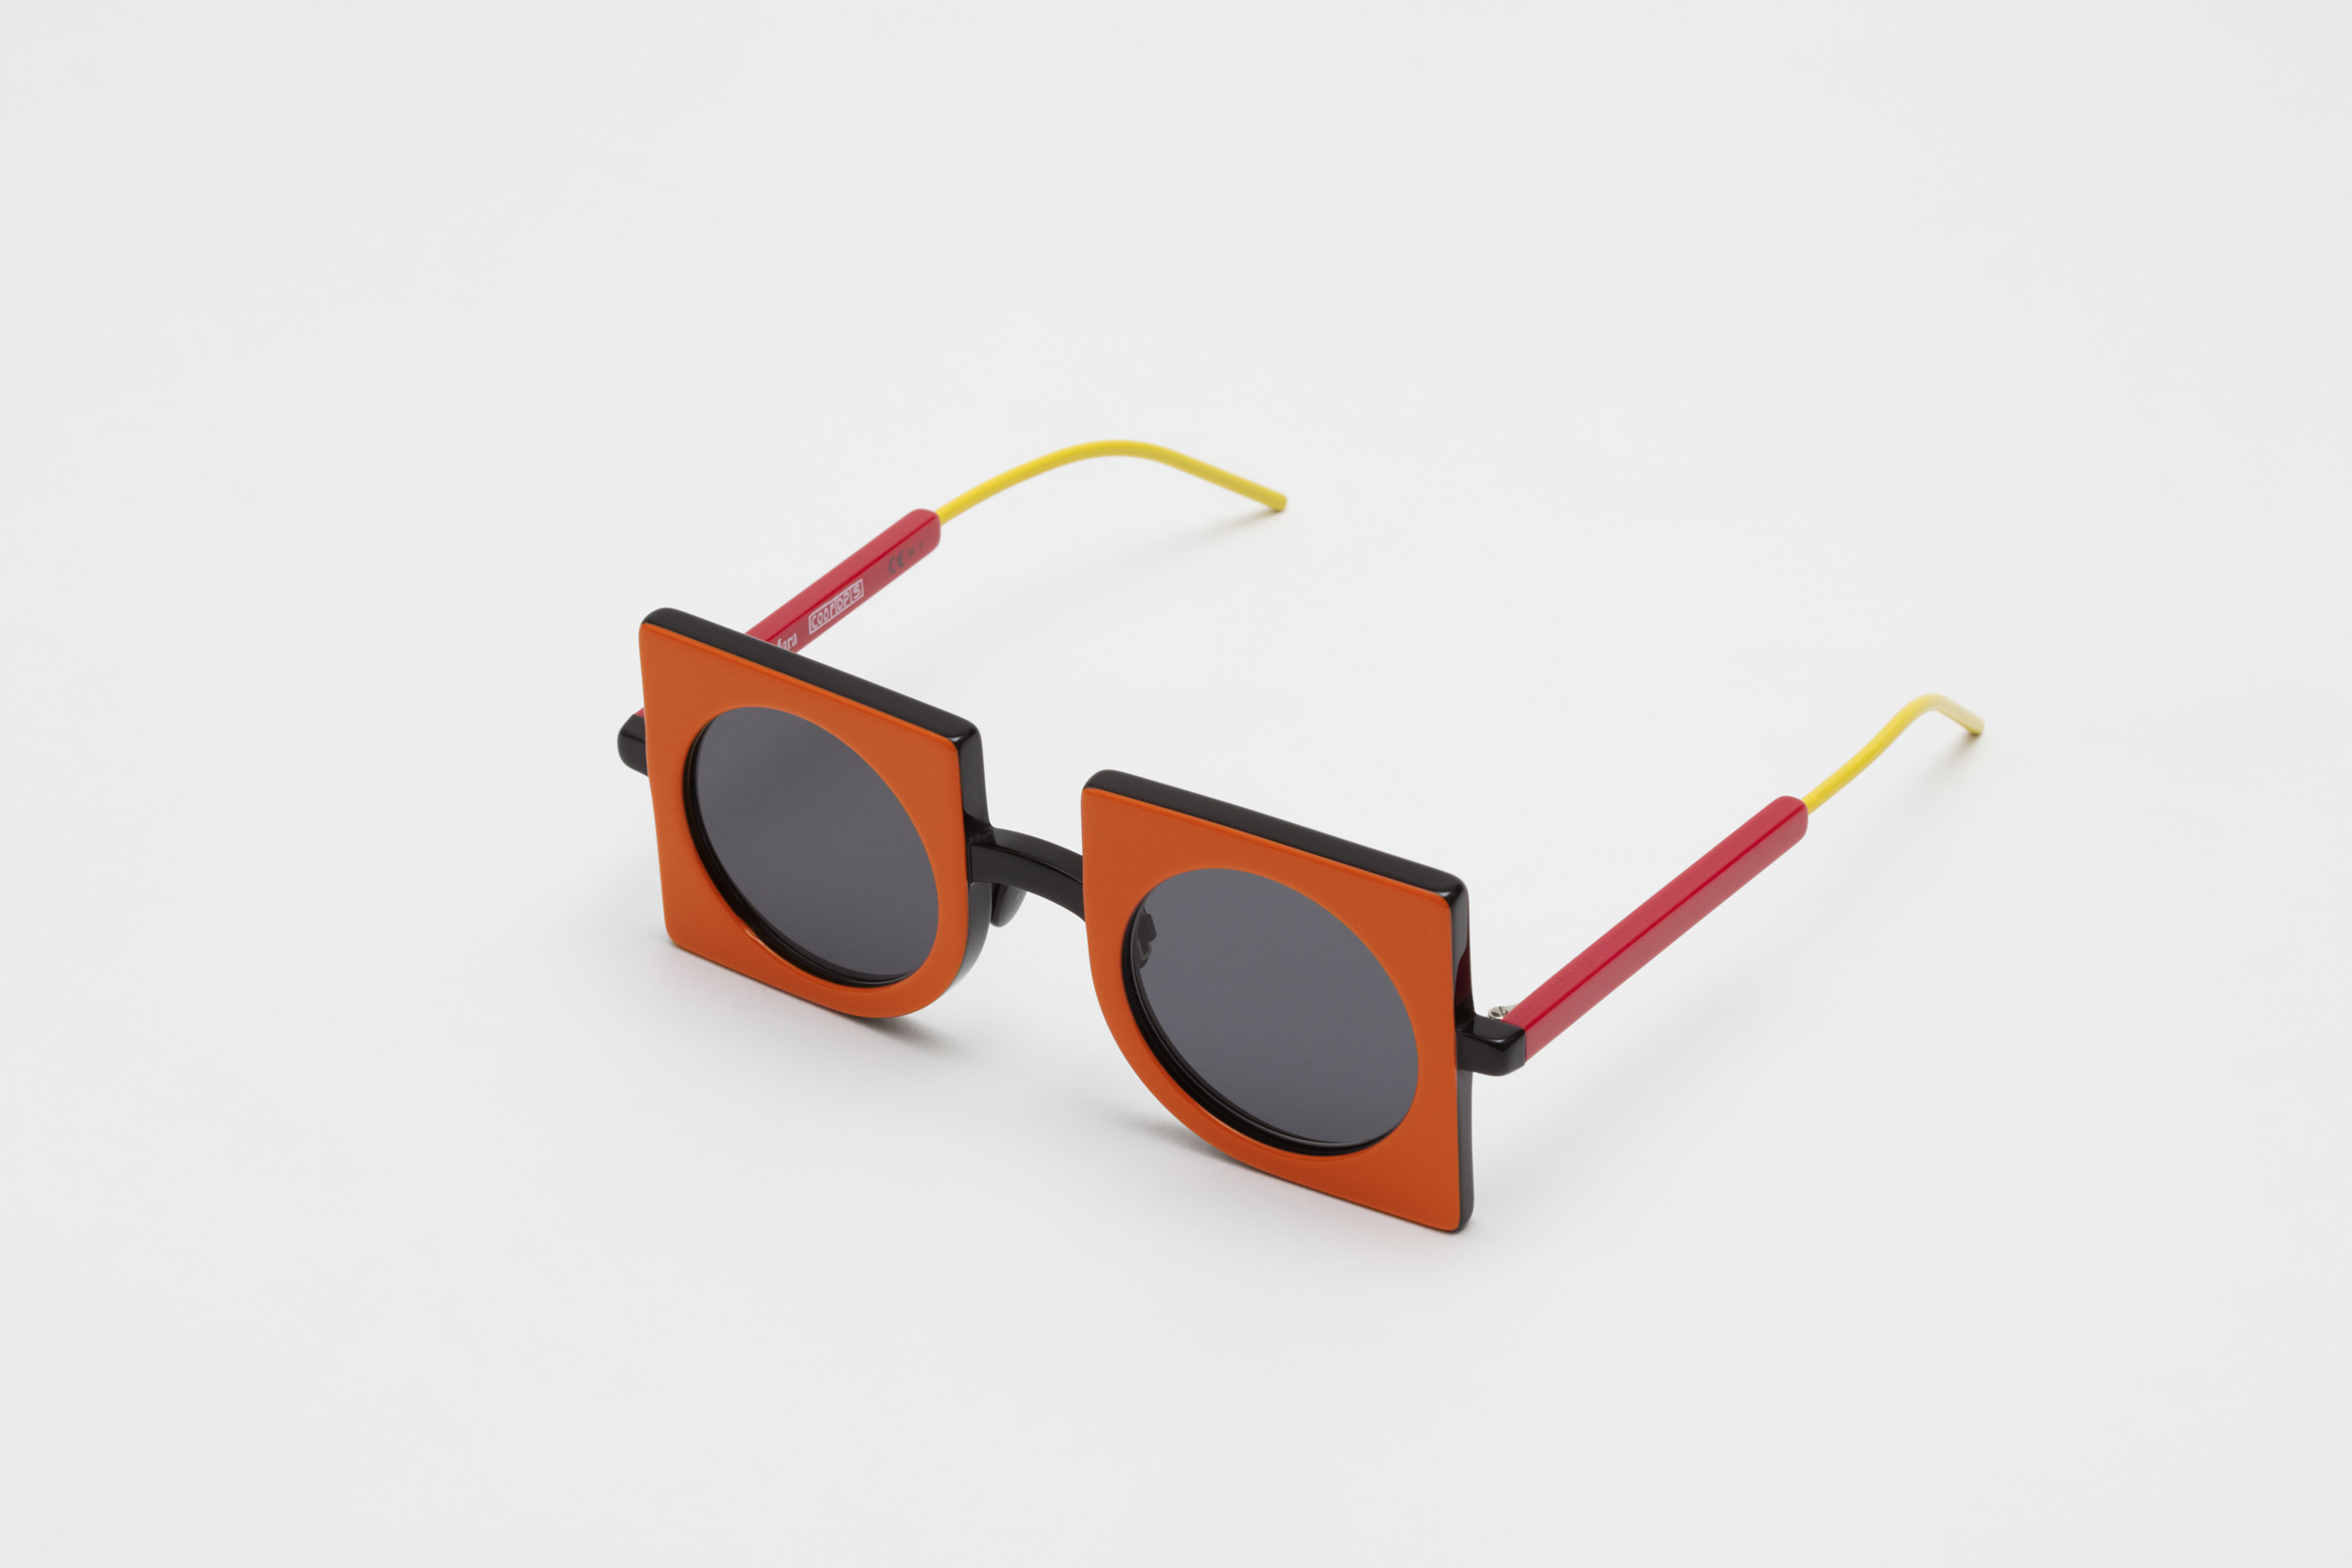 """Max Mara's """"Neoprism"""" sunglasses designed by creative duo CoopDPS."""